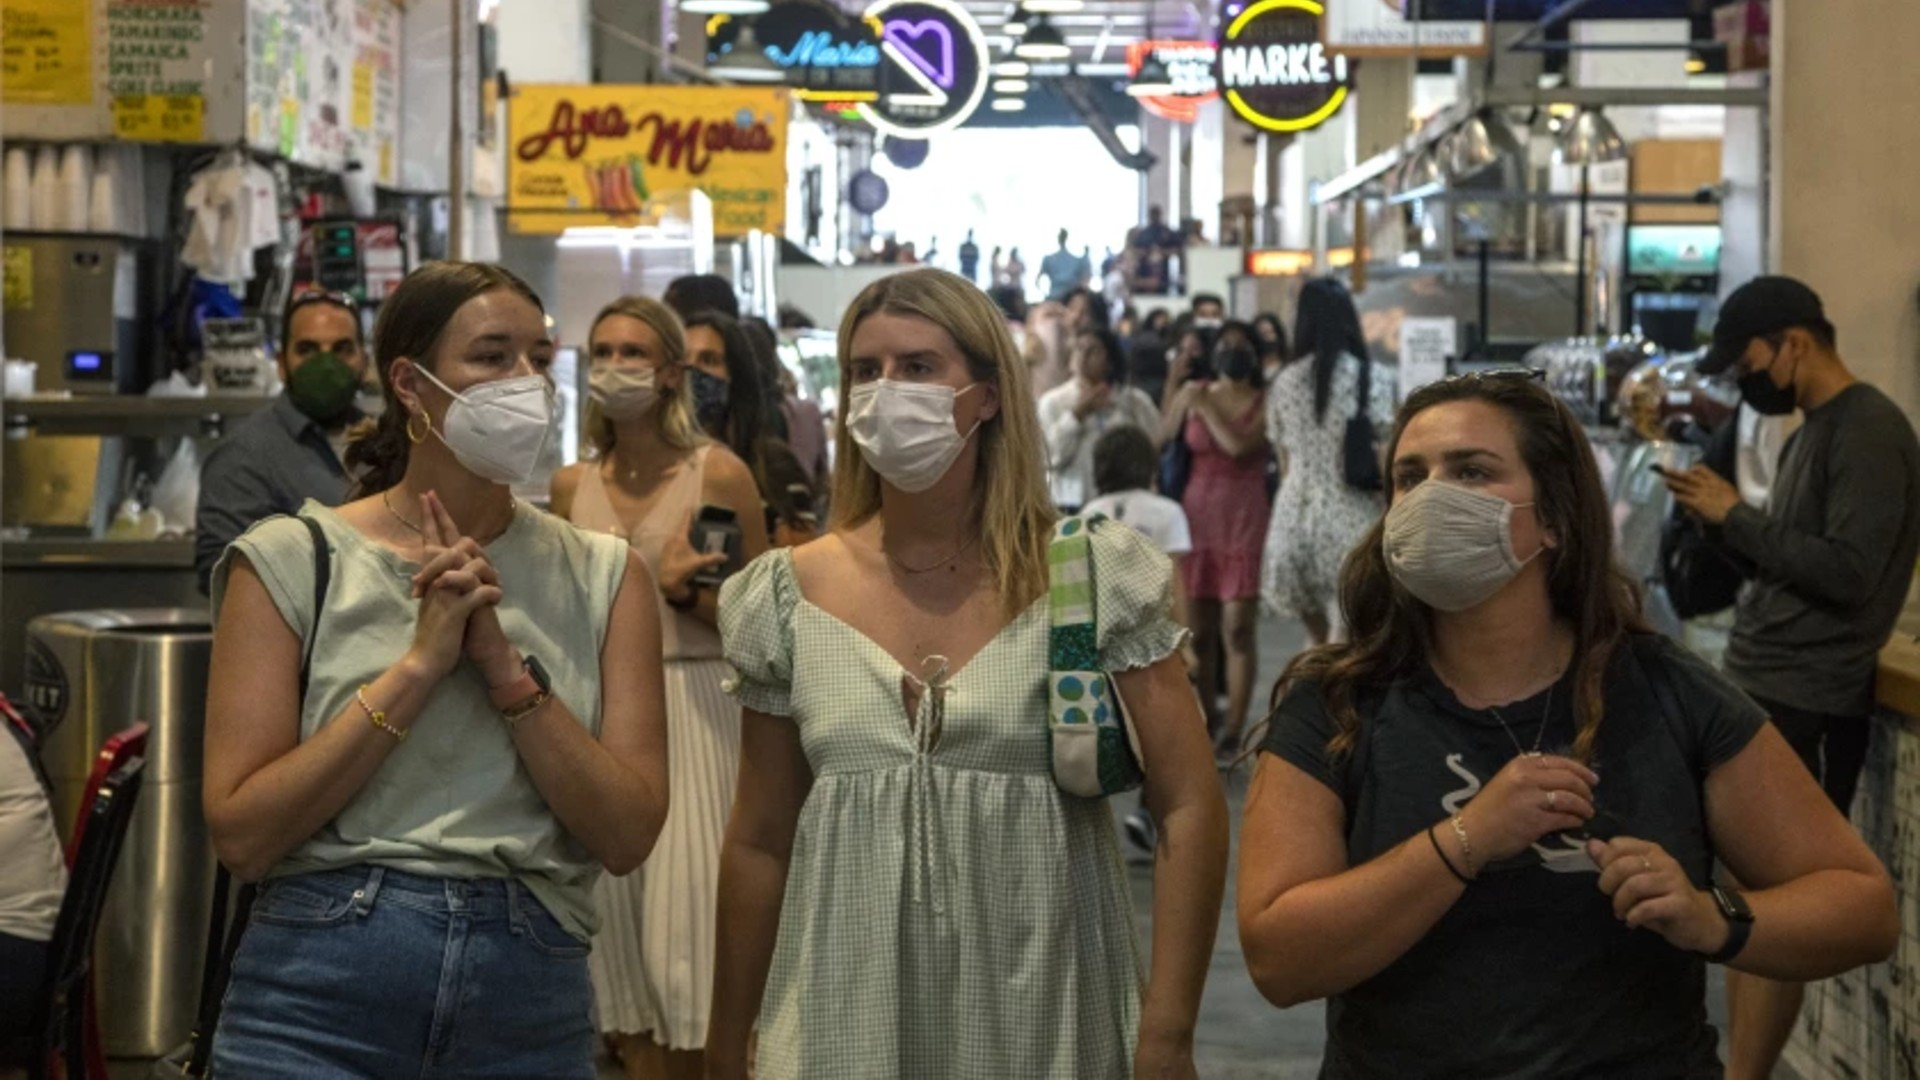 Visitors to the Grand Central Market in Los Angeles were mostly masked on Tuesday.(Brian van der Brug / Los Angeles Times)